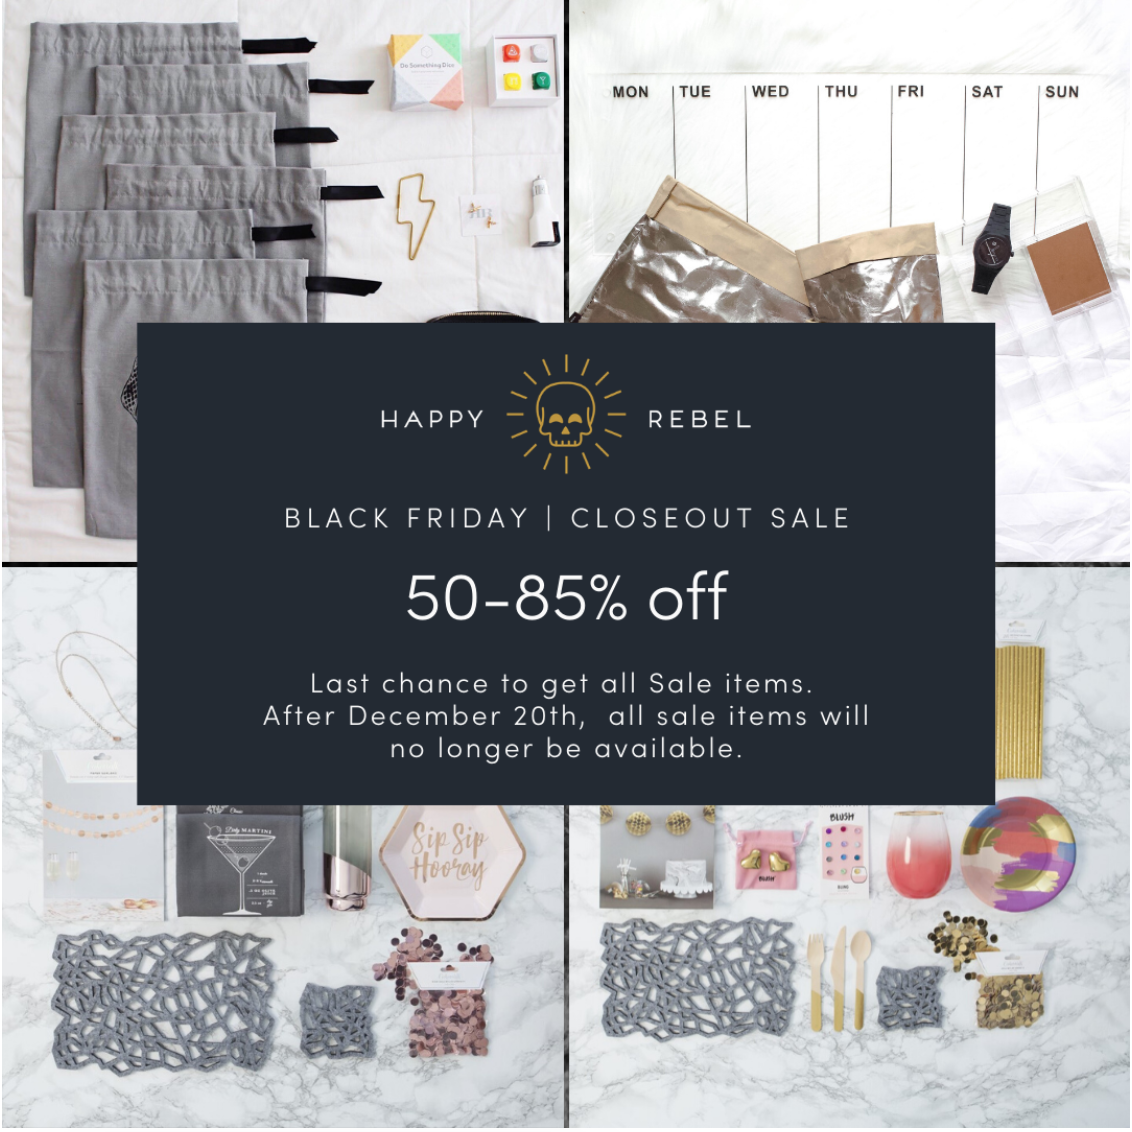 Happy Rebel Box Black Friday Shop Closeout Sale – Save 50-85% Off!